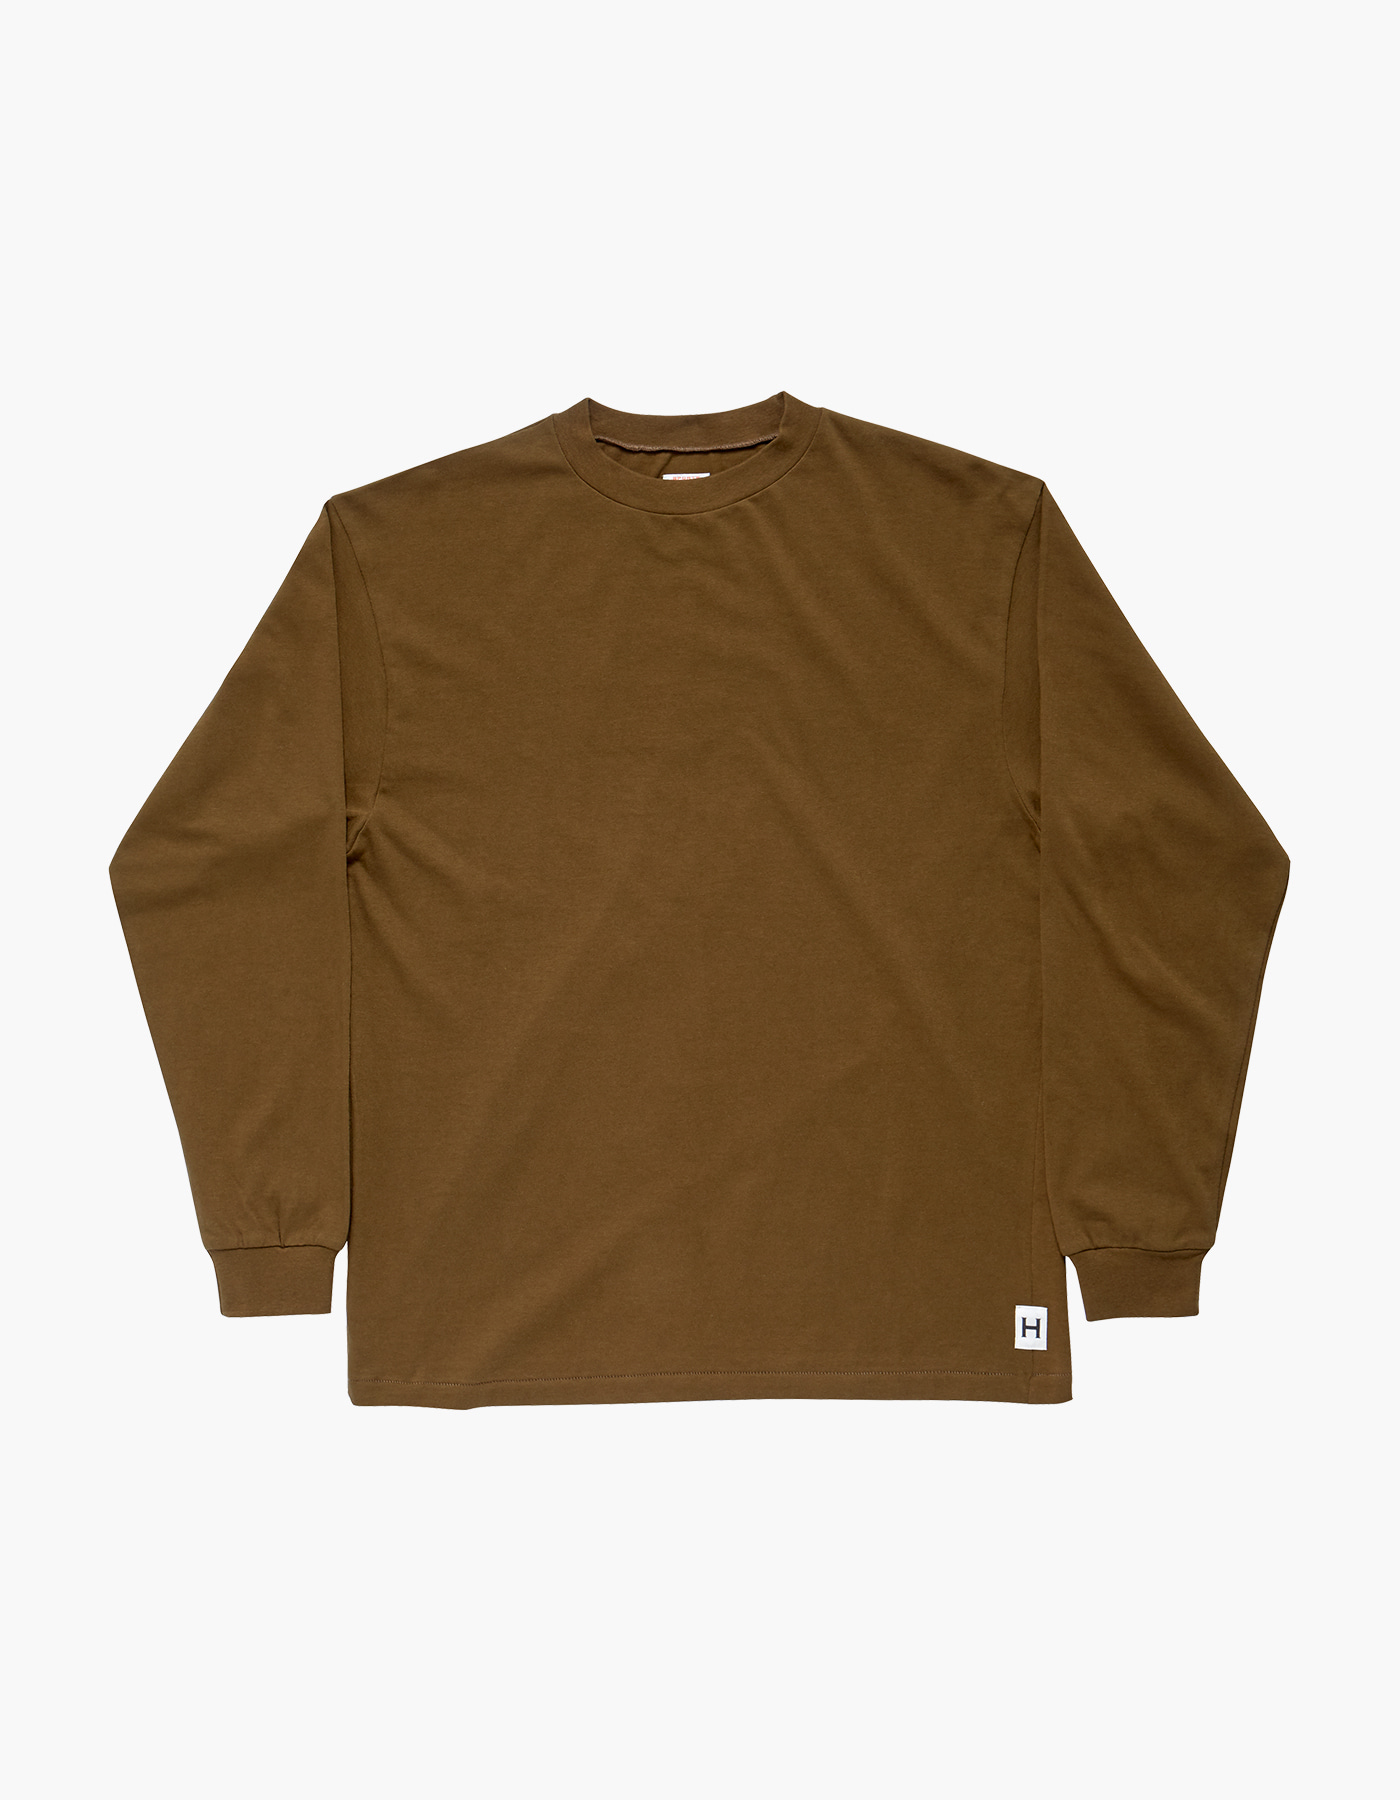 AMERICAN COTTON SINGLE LONG SLEEVE / DESERT KHAKI